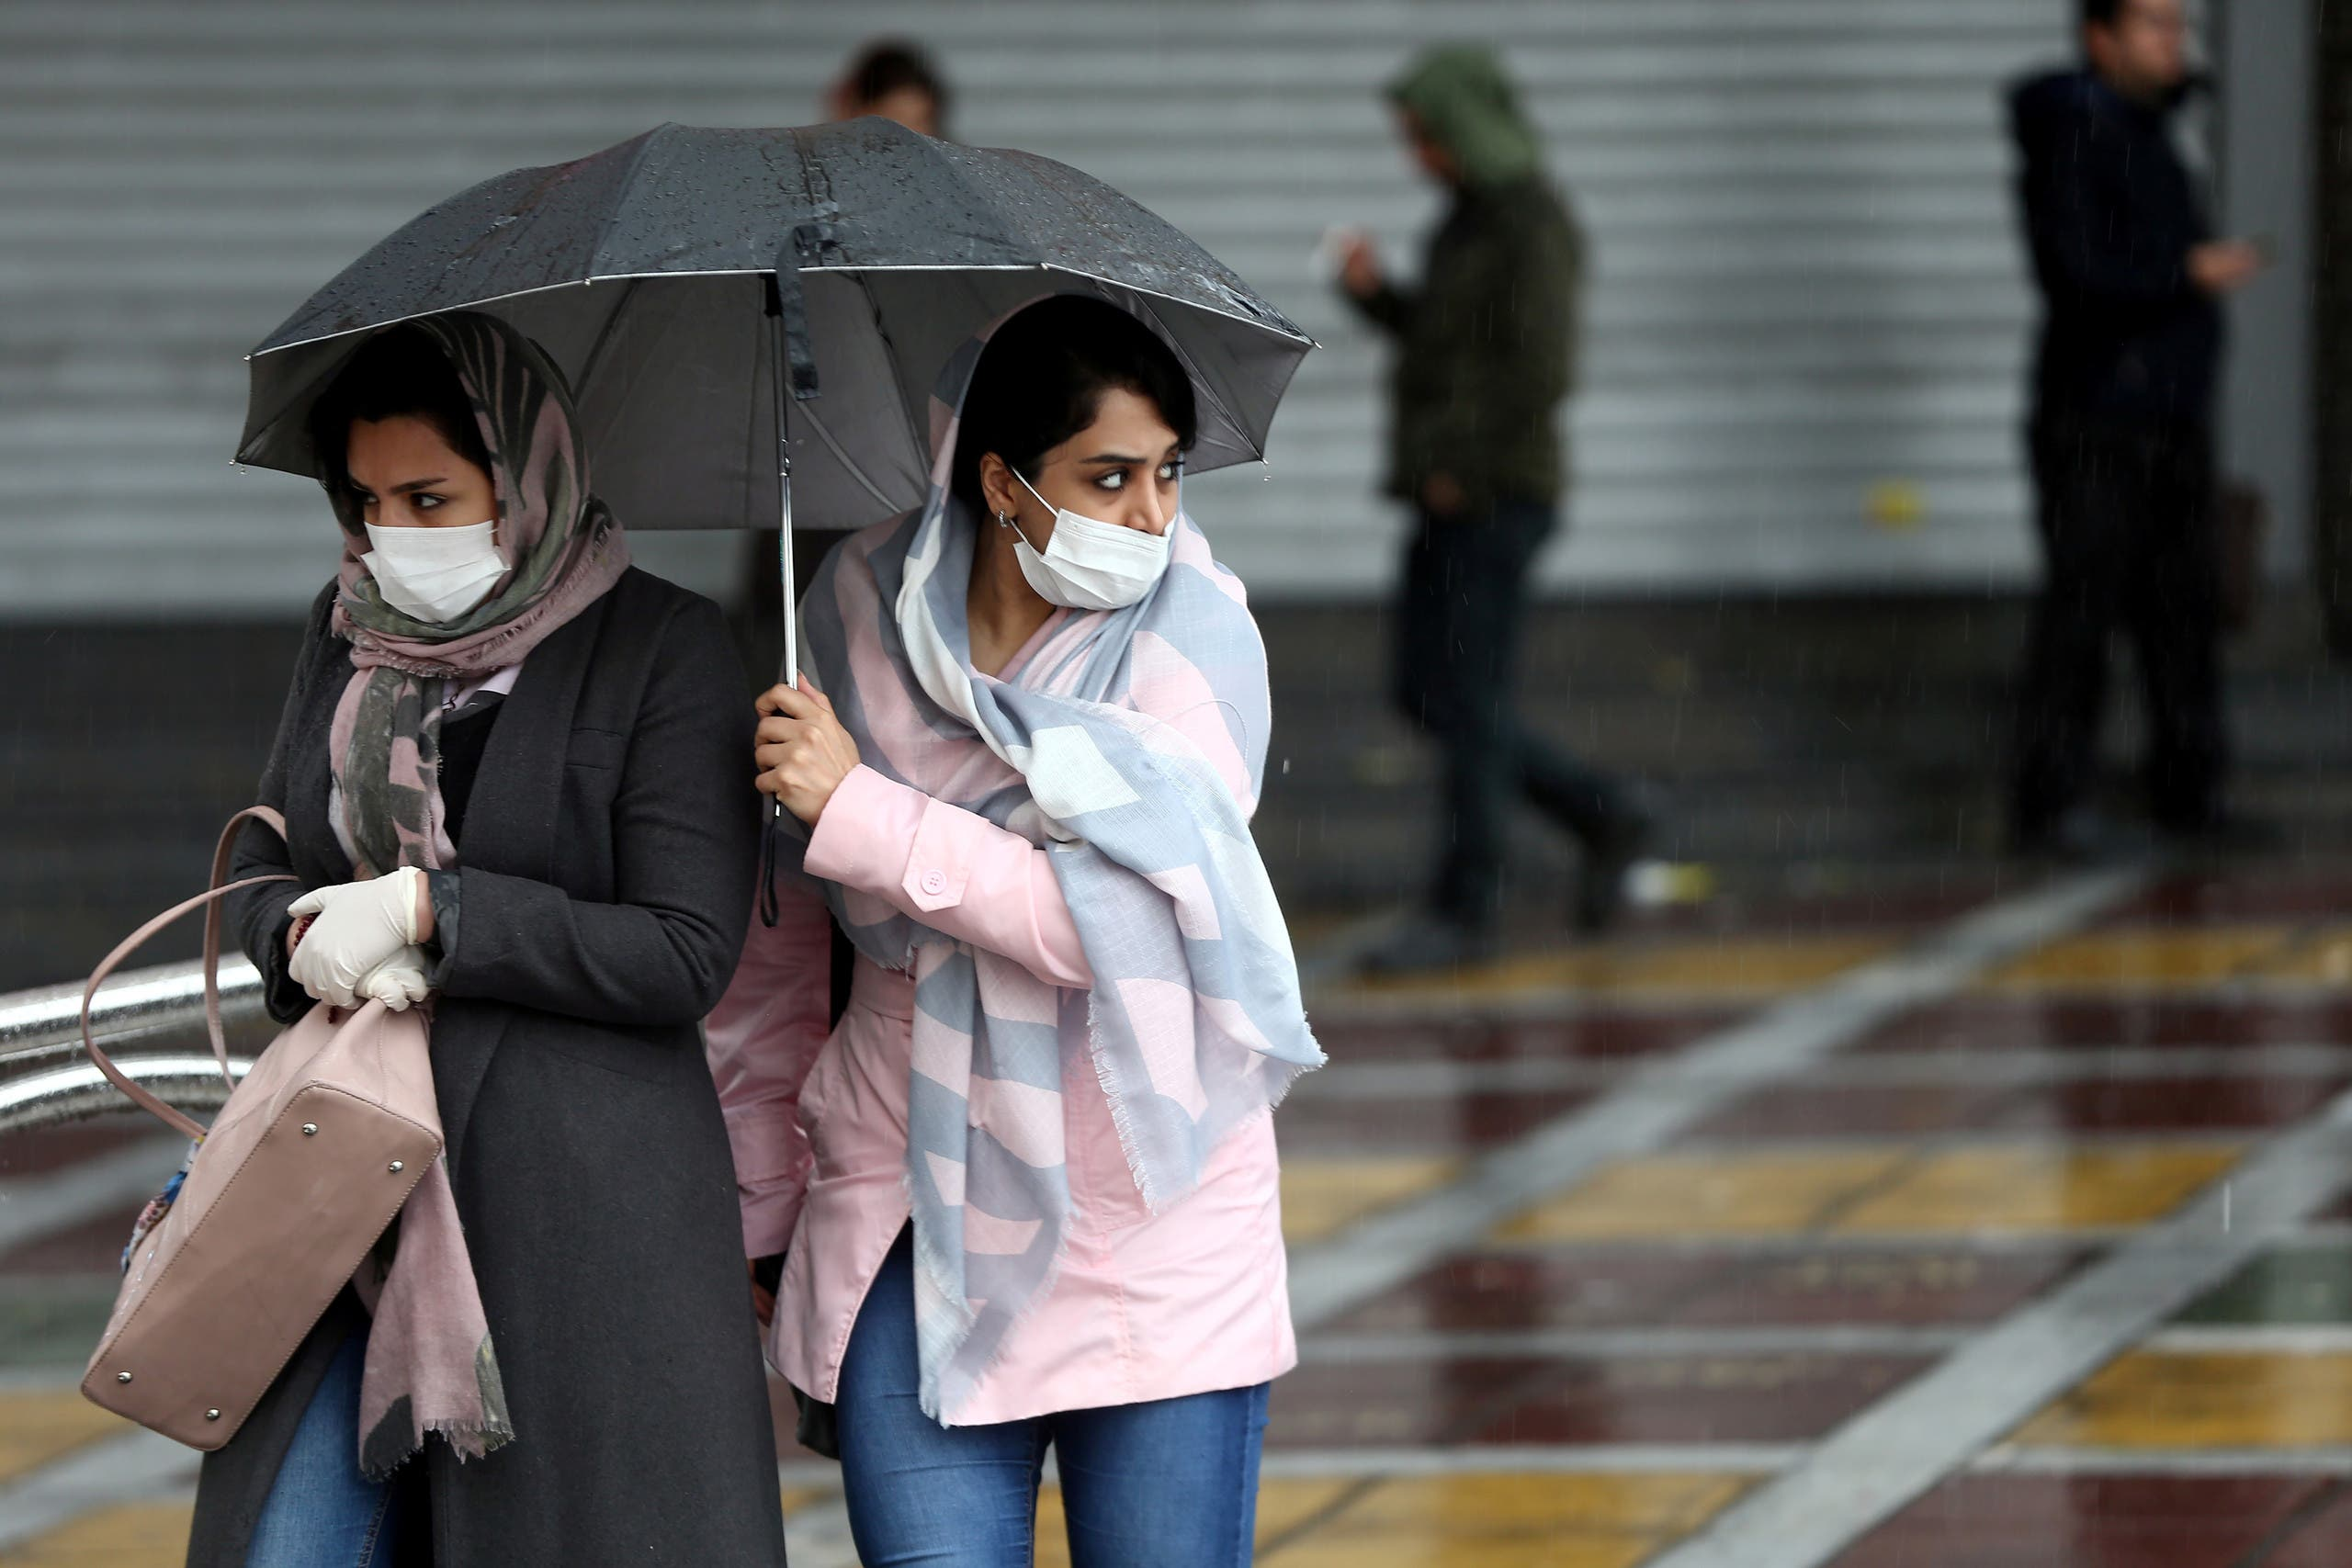 Iranian women wear protective masks to prevent contracting coronavirus, as they walk in the street in Tehran, Iran February 25, 2020. (Reuters)